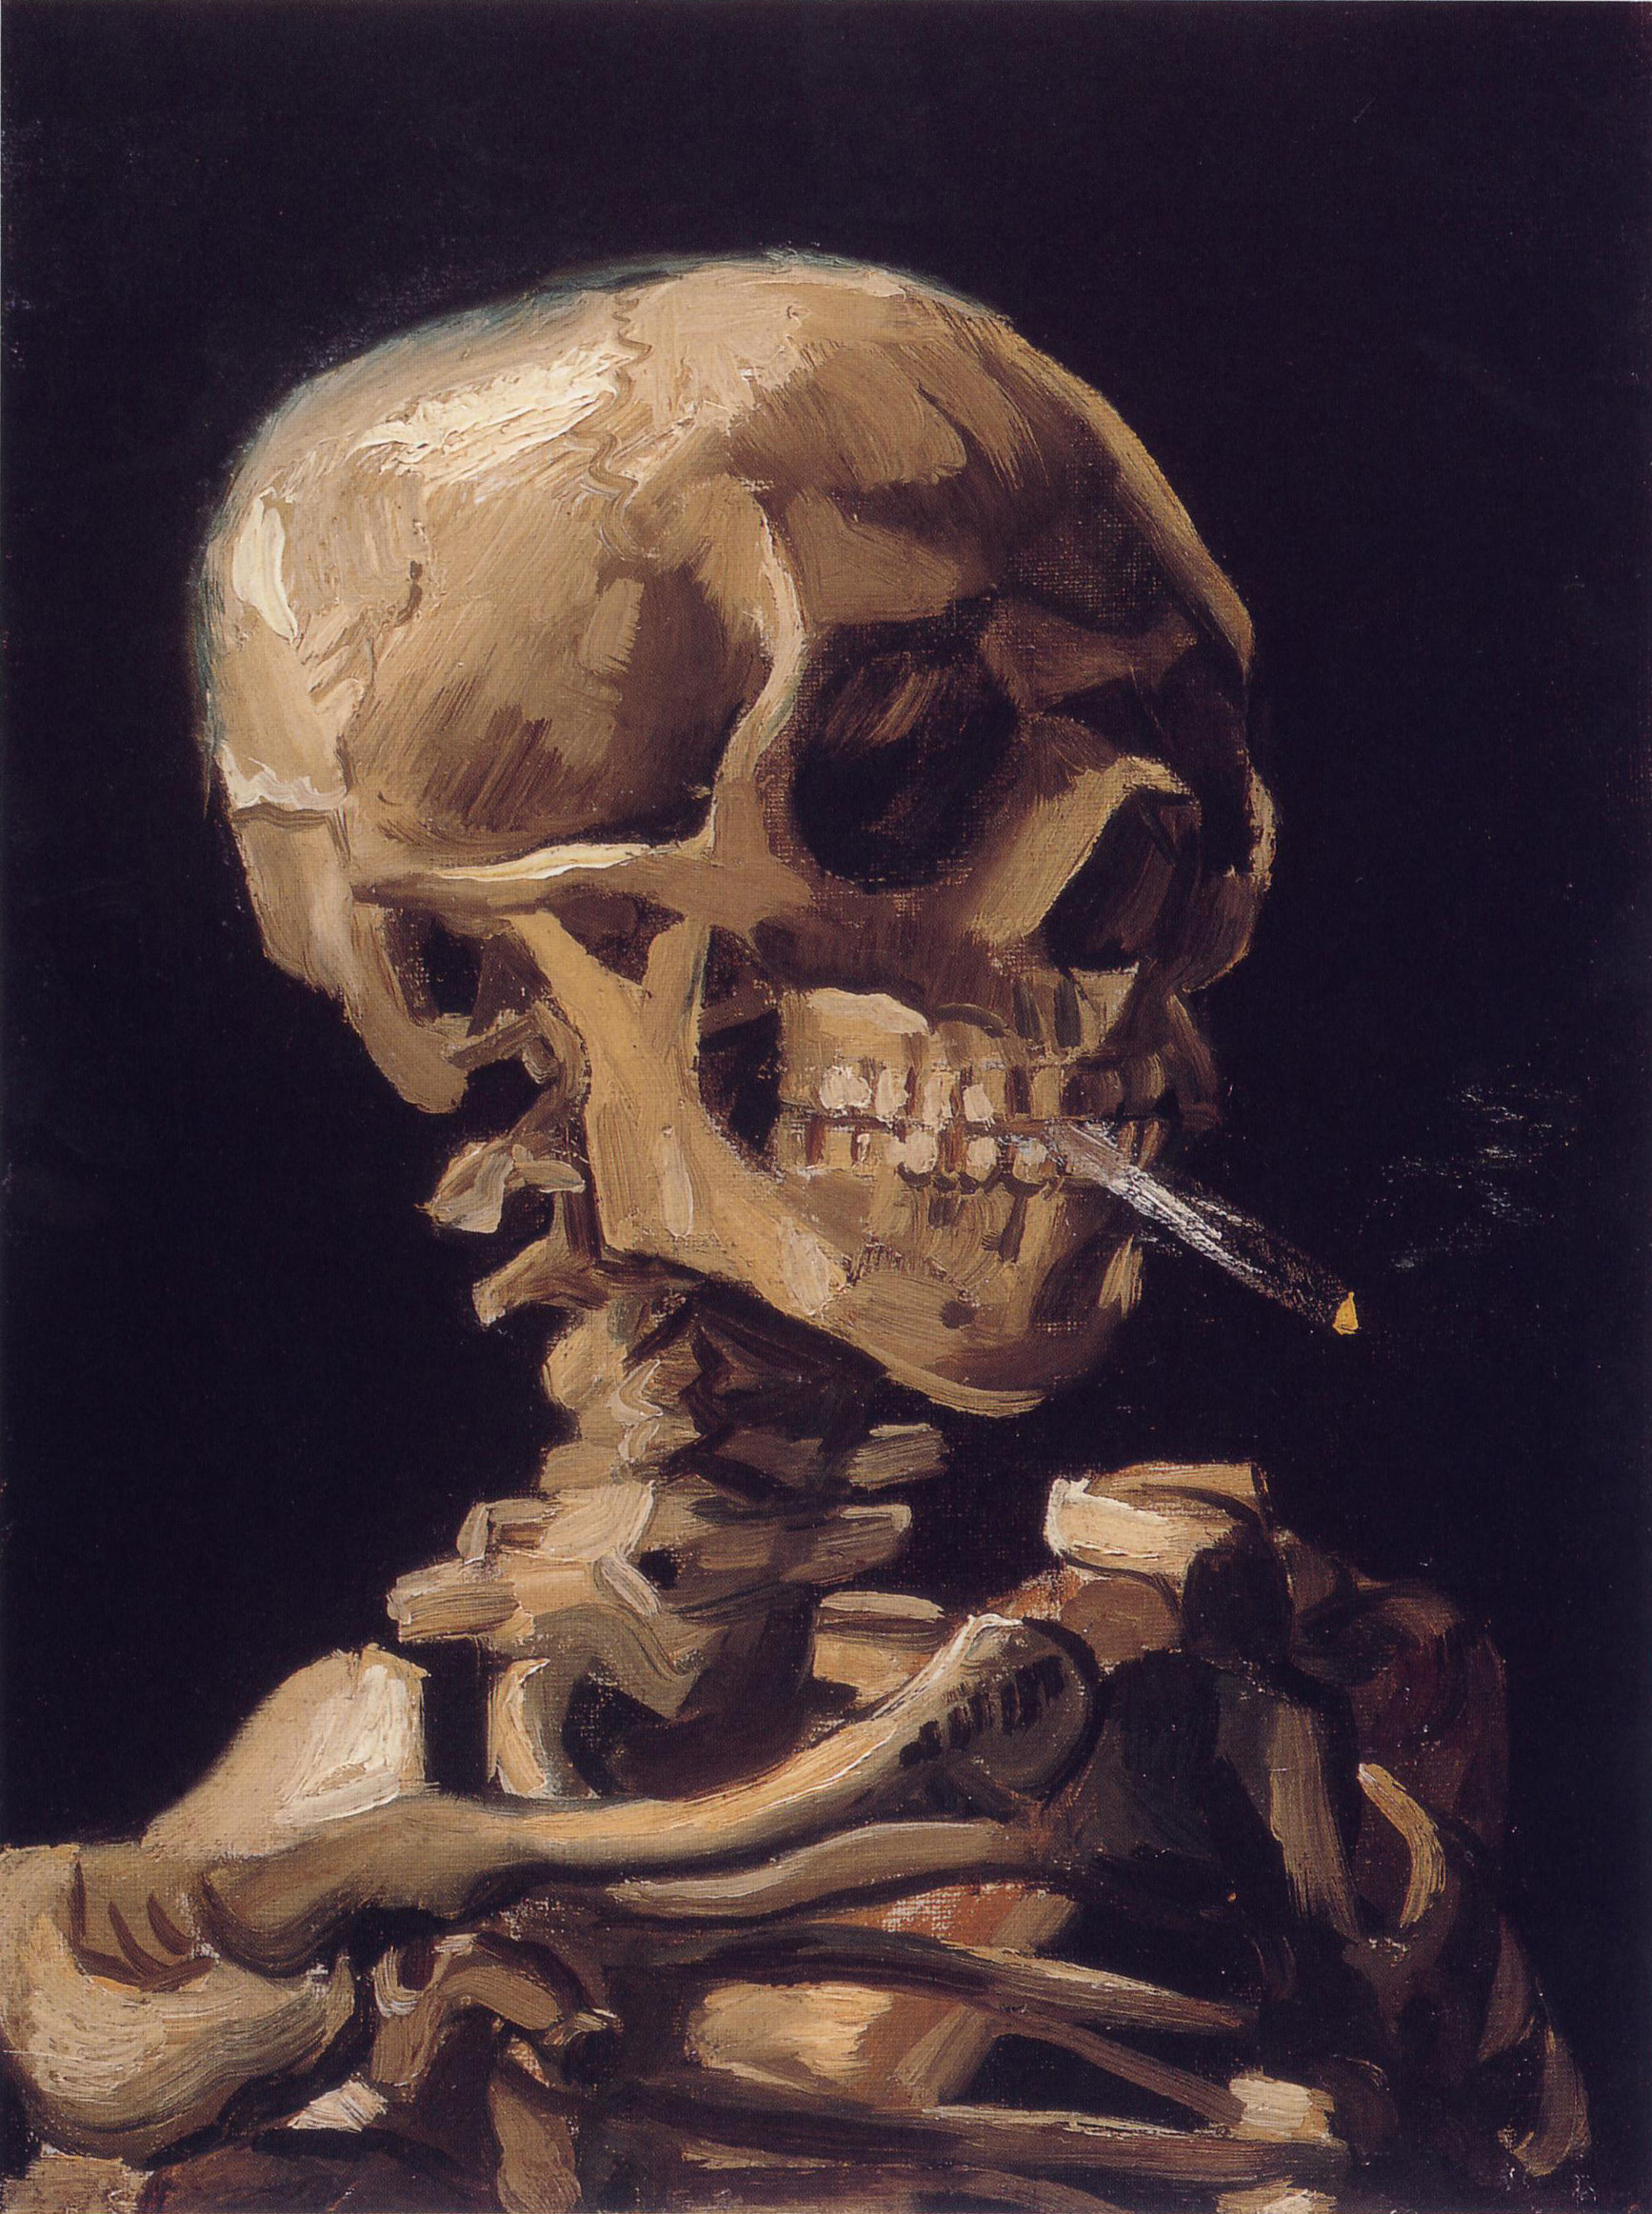 Painting:  Skull of a Skeleton with Burning Cigarette, 1885–1886, oil on canvas, Van Gogh Museum